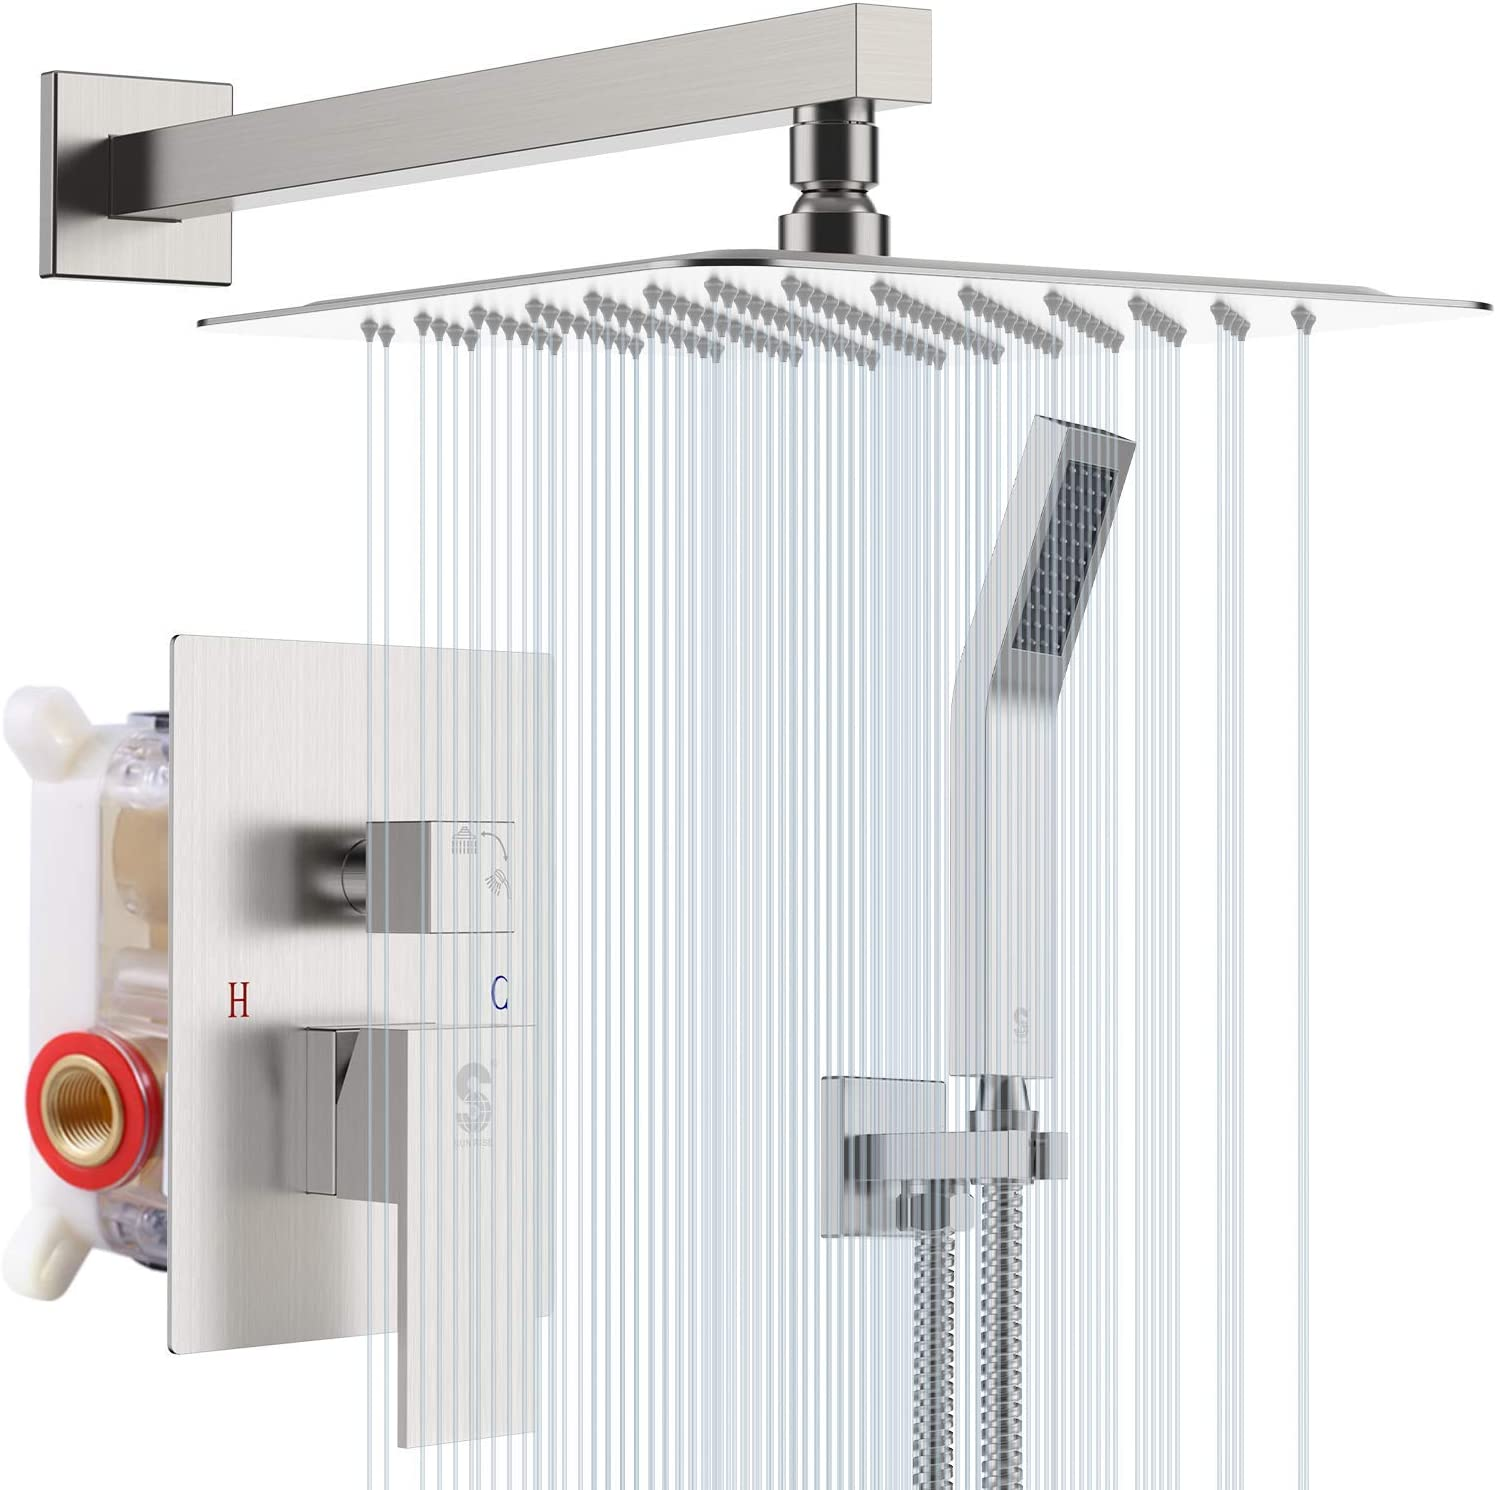 SR SUN RISE 20 Inches Bathroom Luxury Rain Mixer Shower Combo Set Wall  Mounted Rainfall Shower Head System Brushed Nickel Finish Shower Faucet ...